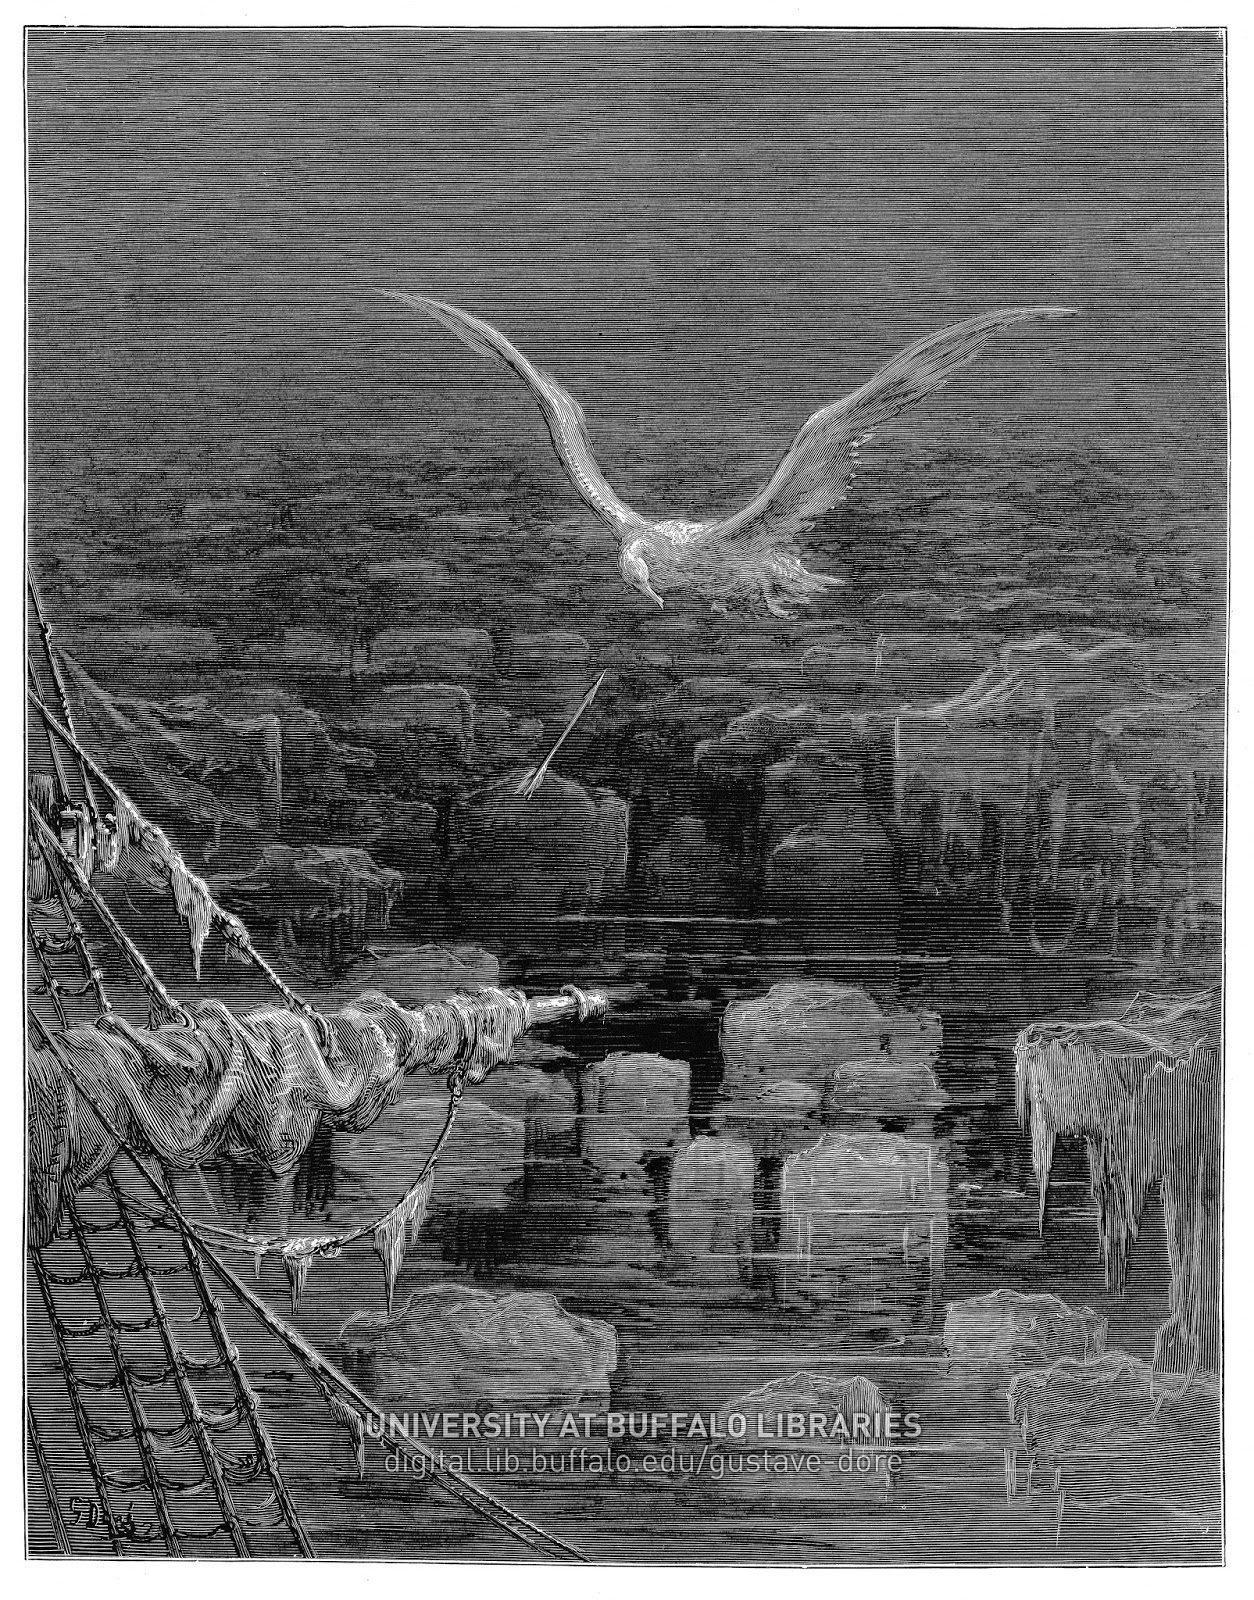 """With my cross-bow I shot the Albatross"" illustration by Gustav Dore"